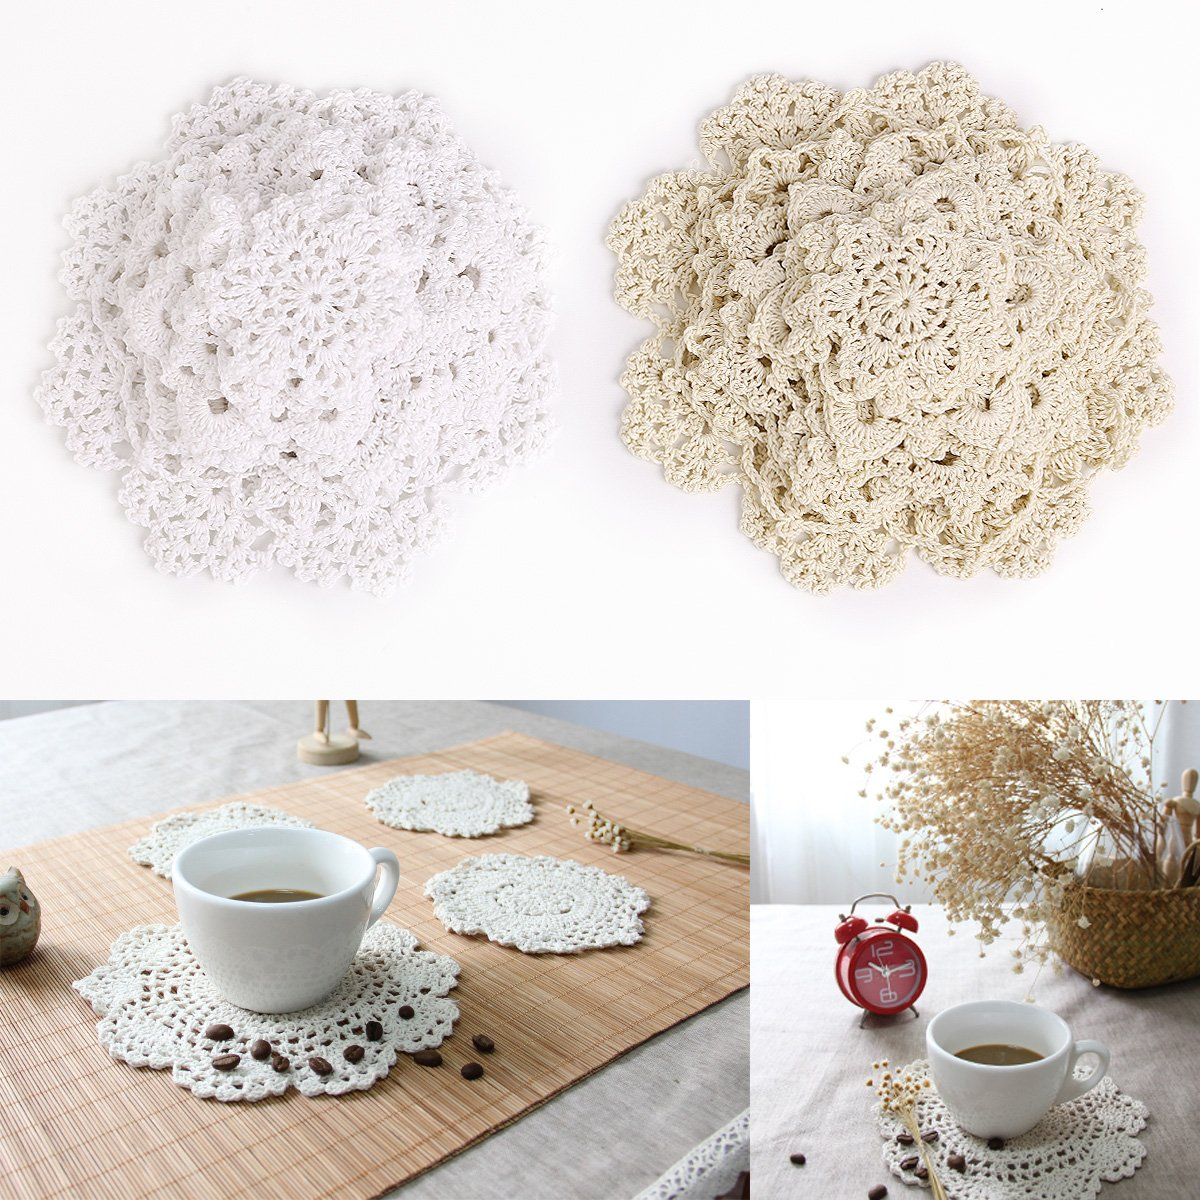 Compra SurePromise One Stop Solution for Sourcing 24 uds Posavasos de Crochet Tejidos de Punto Copo de Nieve Cotton Crochet doilies Home Table en Amazon.es